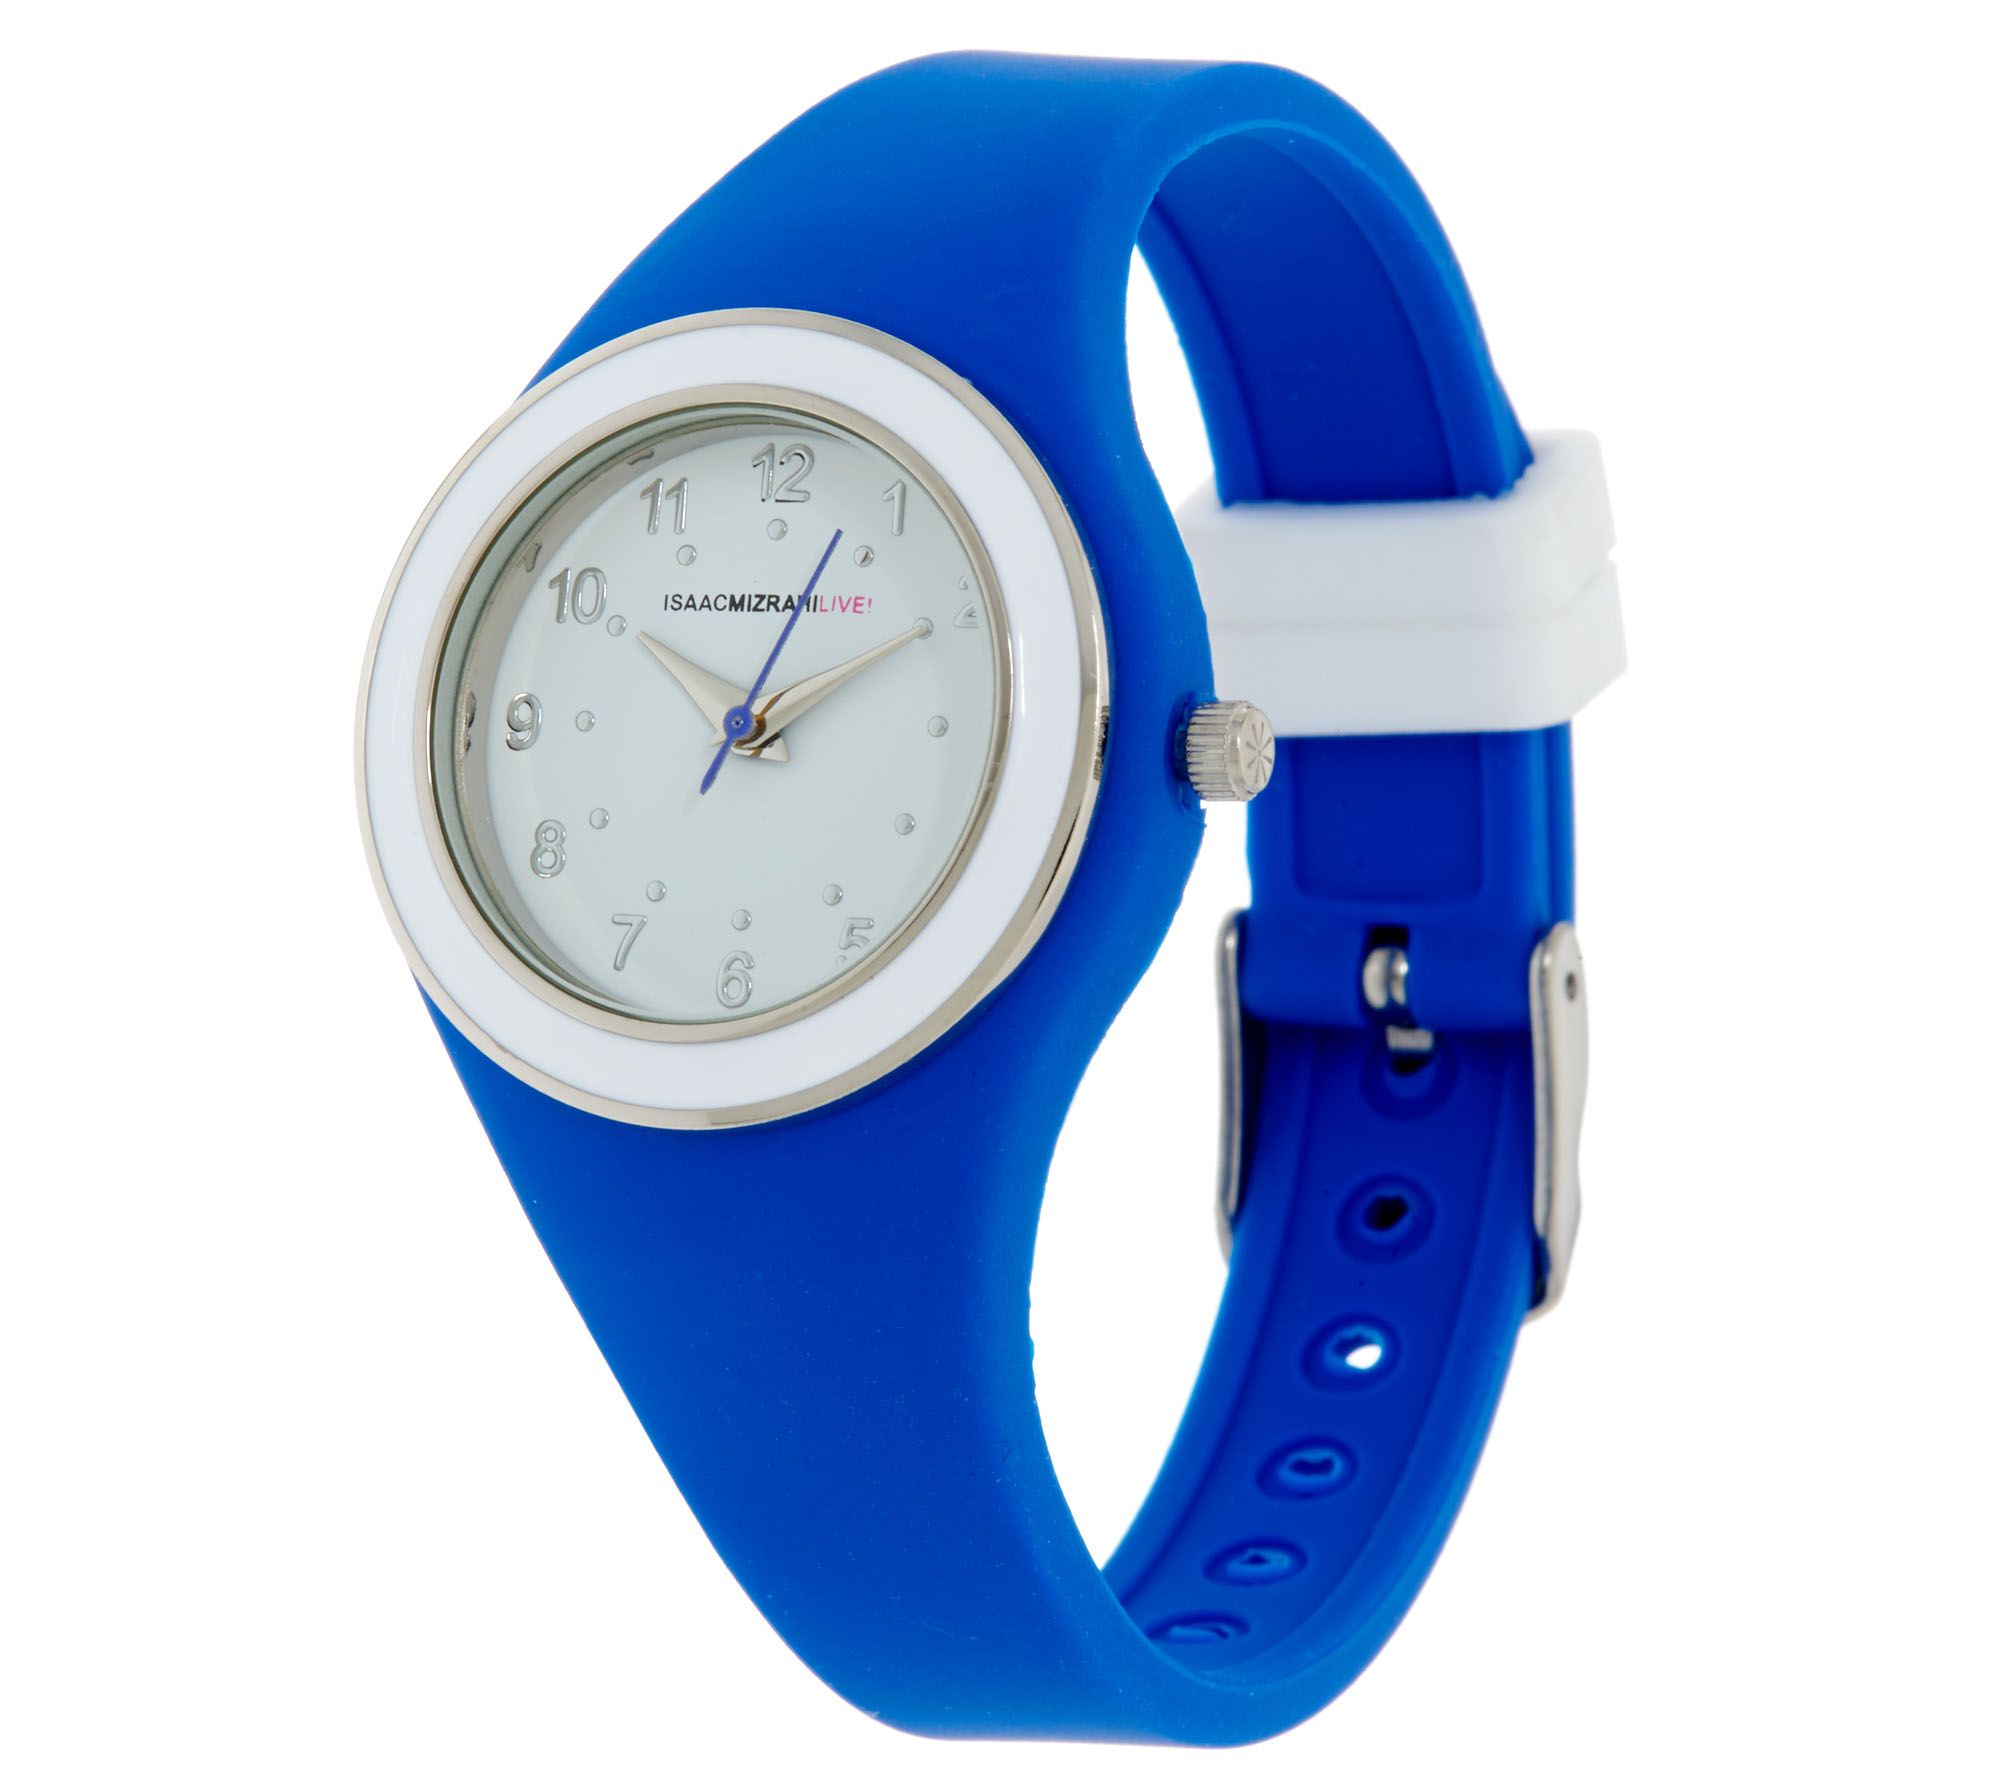 Isaac Mizrahi Live! SOHO Silicone Strap Watch - Page 1 ...